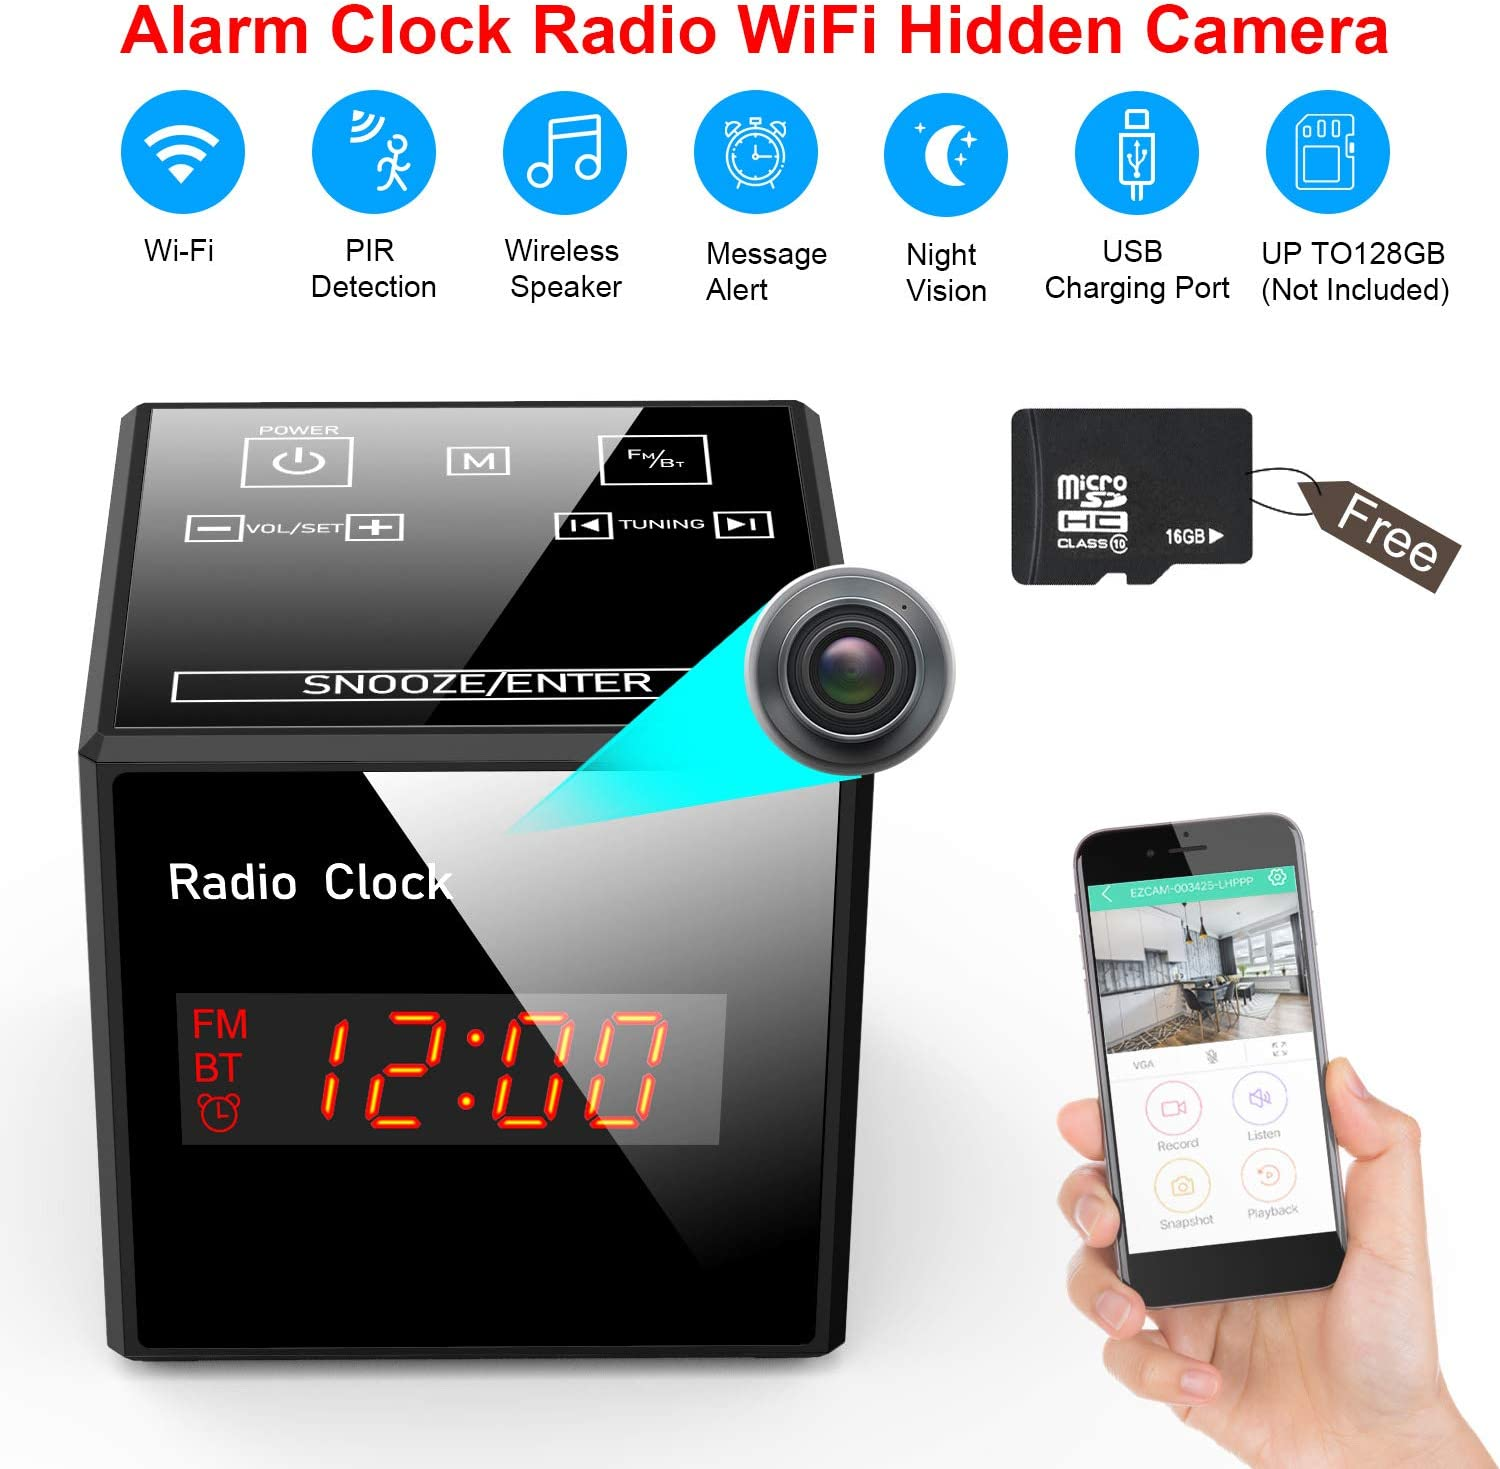 Hidden Camera Clock – Spy Cameras Alarm Clock Radio – Nanny Cams Wireless with Cell Phone APP – HD 960 FM Bluetooth Speaker USB Charging Night Vision Motion Detection 128gb Storage 16GB SD Black